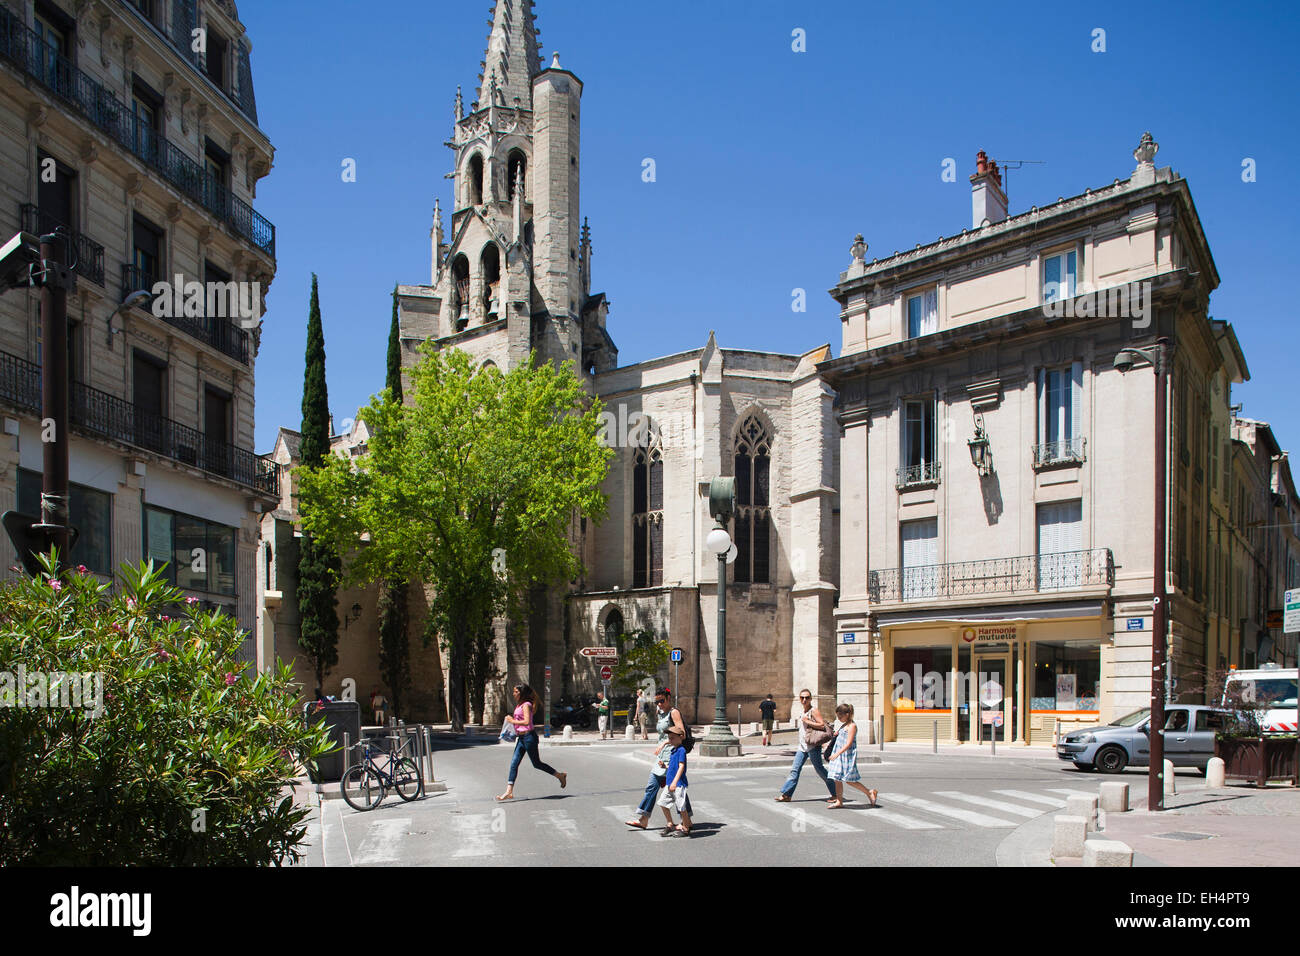 eglise st. pierre, avignon, provence, france, europe - Stock Image